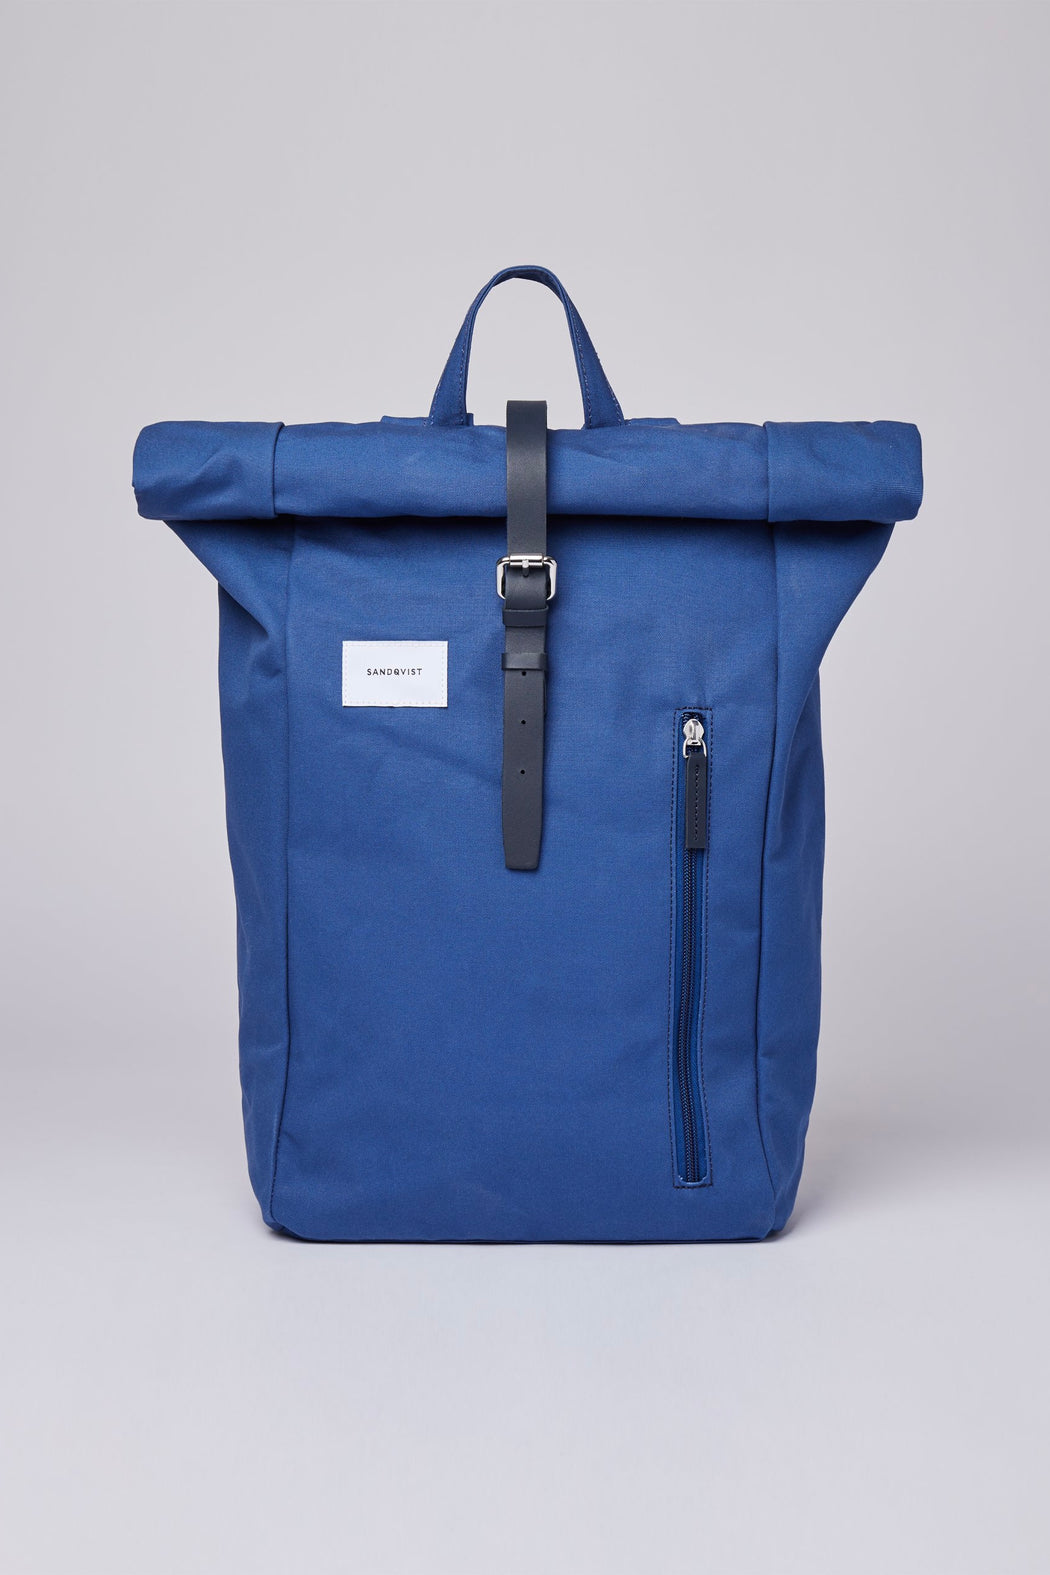 DANTE Backpack blue with blue leather